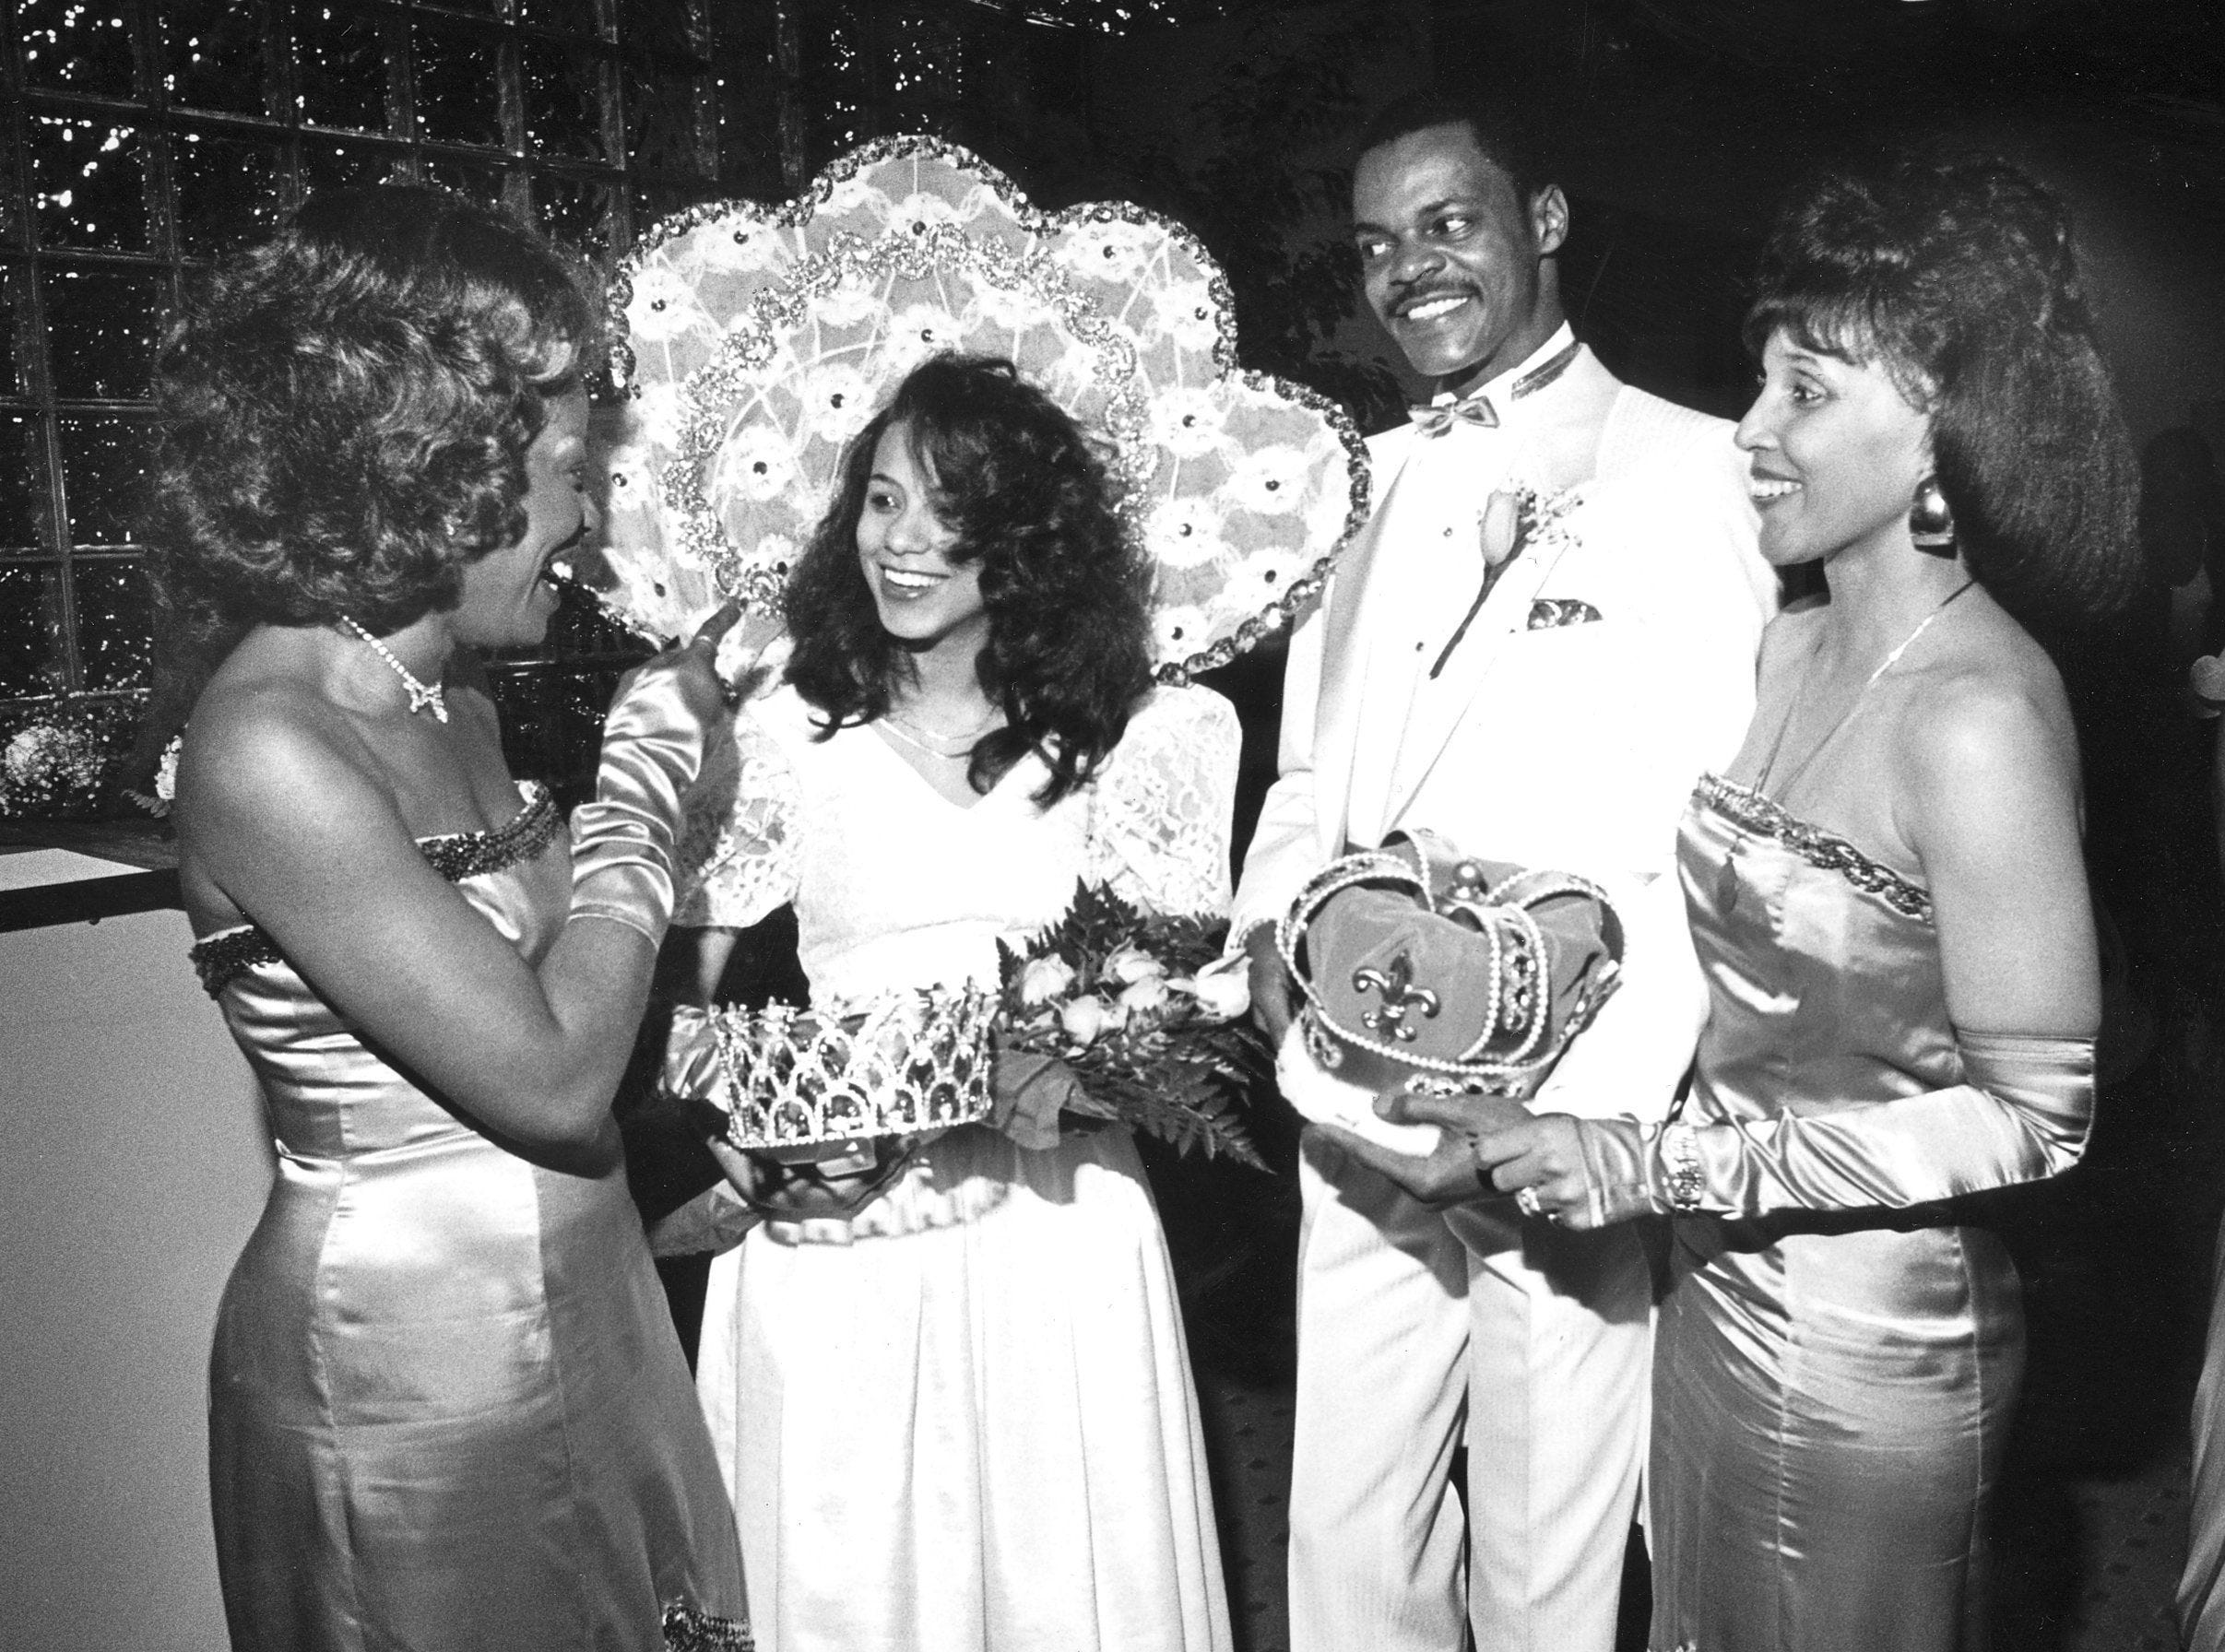 Waurine Campbell (Left), 1985 Cotton Makers' Jubilee Queen talks with 1987 queen Billene Miller (Second Left) on 18 Apr 1987. 1987 King Lamon Lomax and Catherine Doggett (Right), 1984 queen look on.